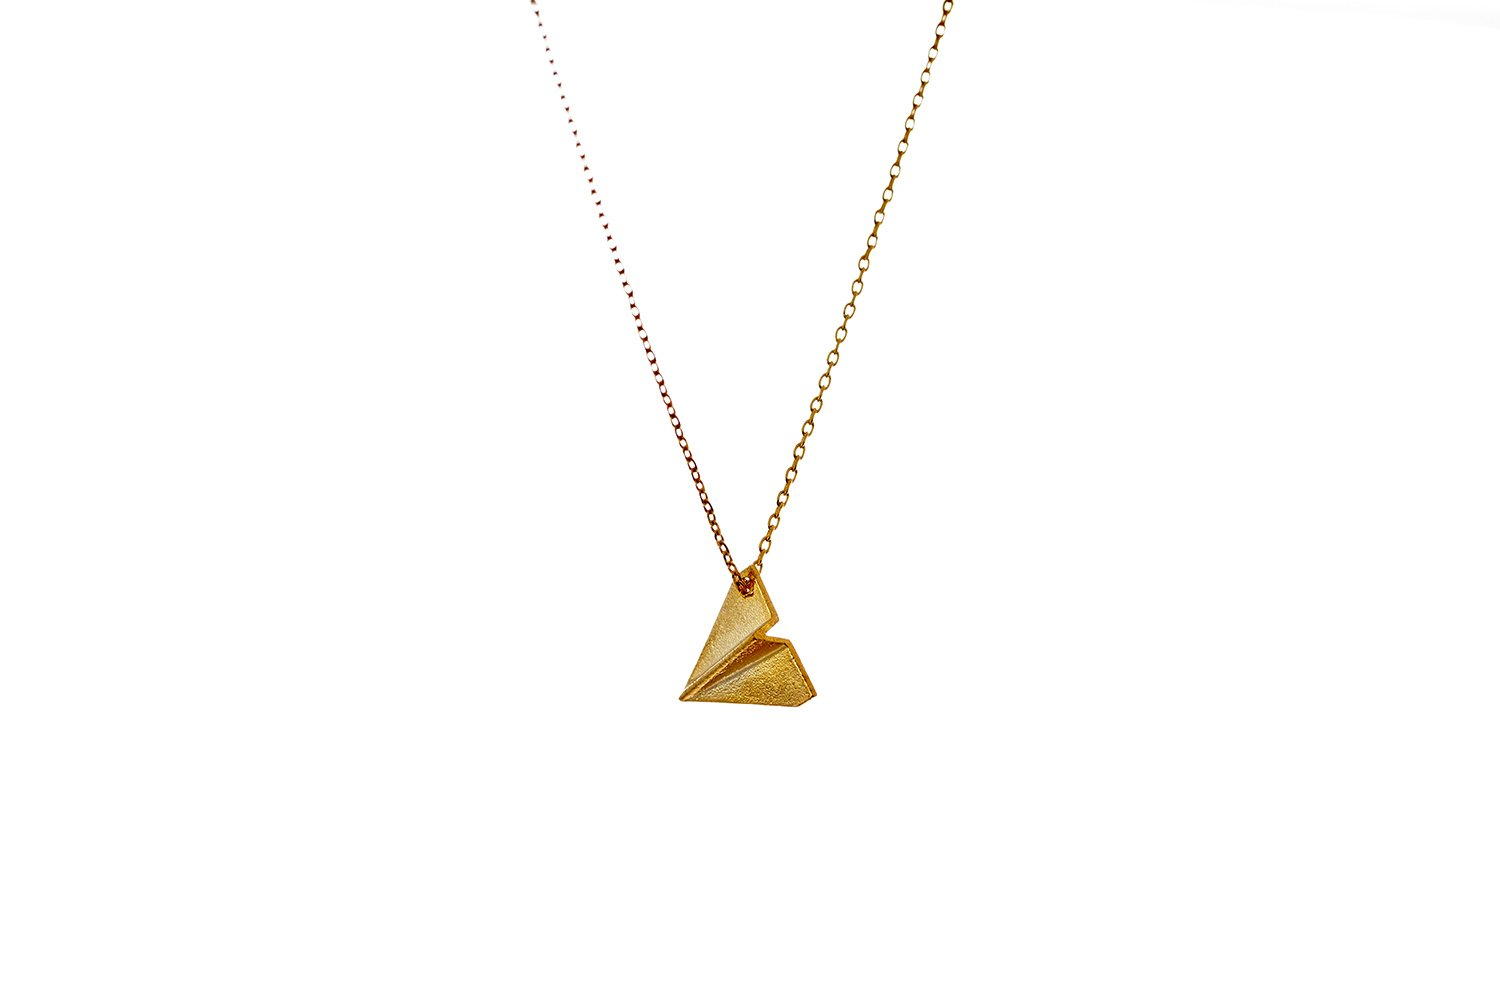 Fit Selection Flight Crew necklace Minimalist paper plane necklace Airplane pendant Pilot necklace Occupational jewelry (gold-plated-base)